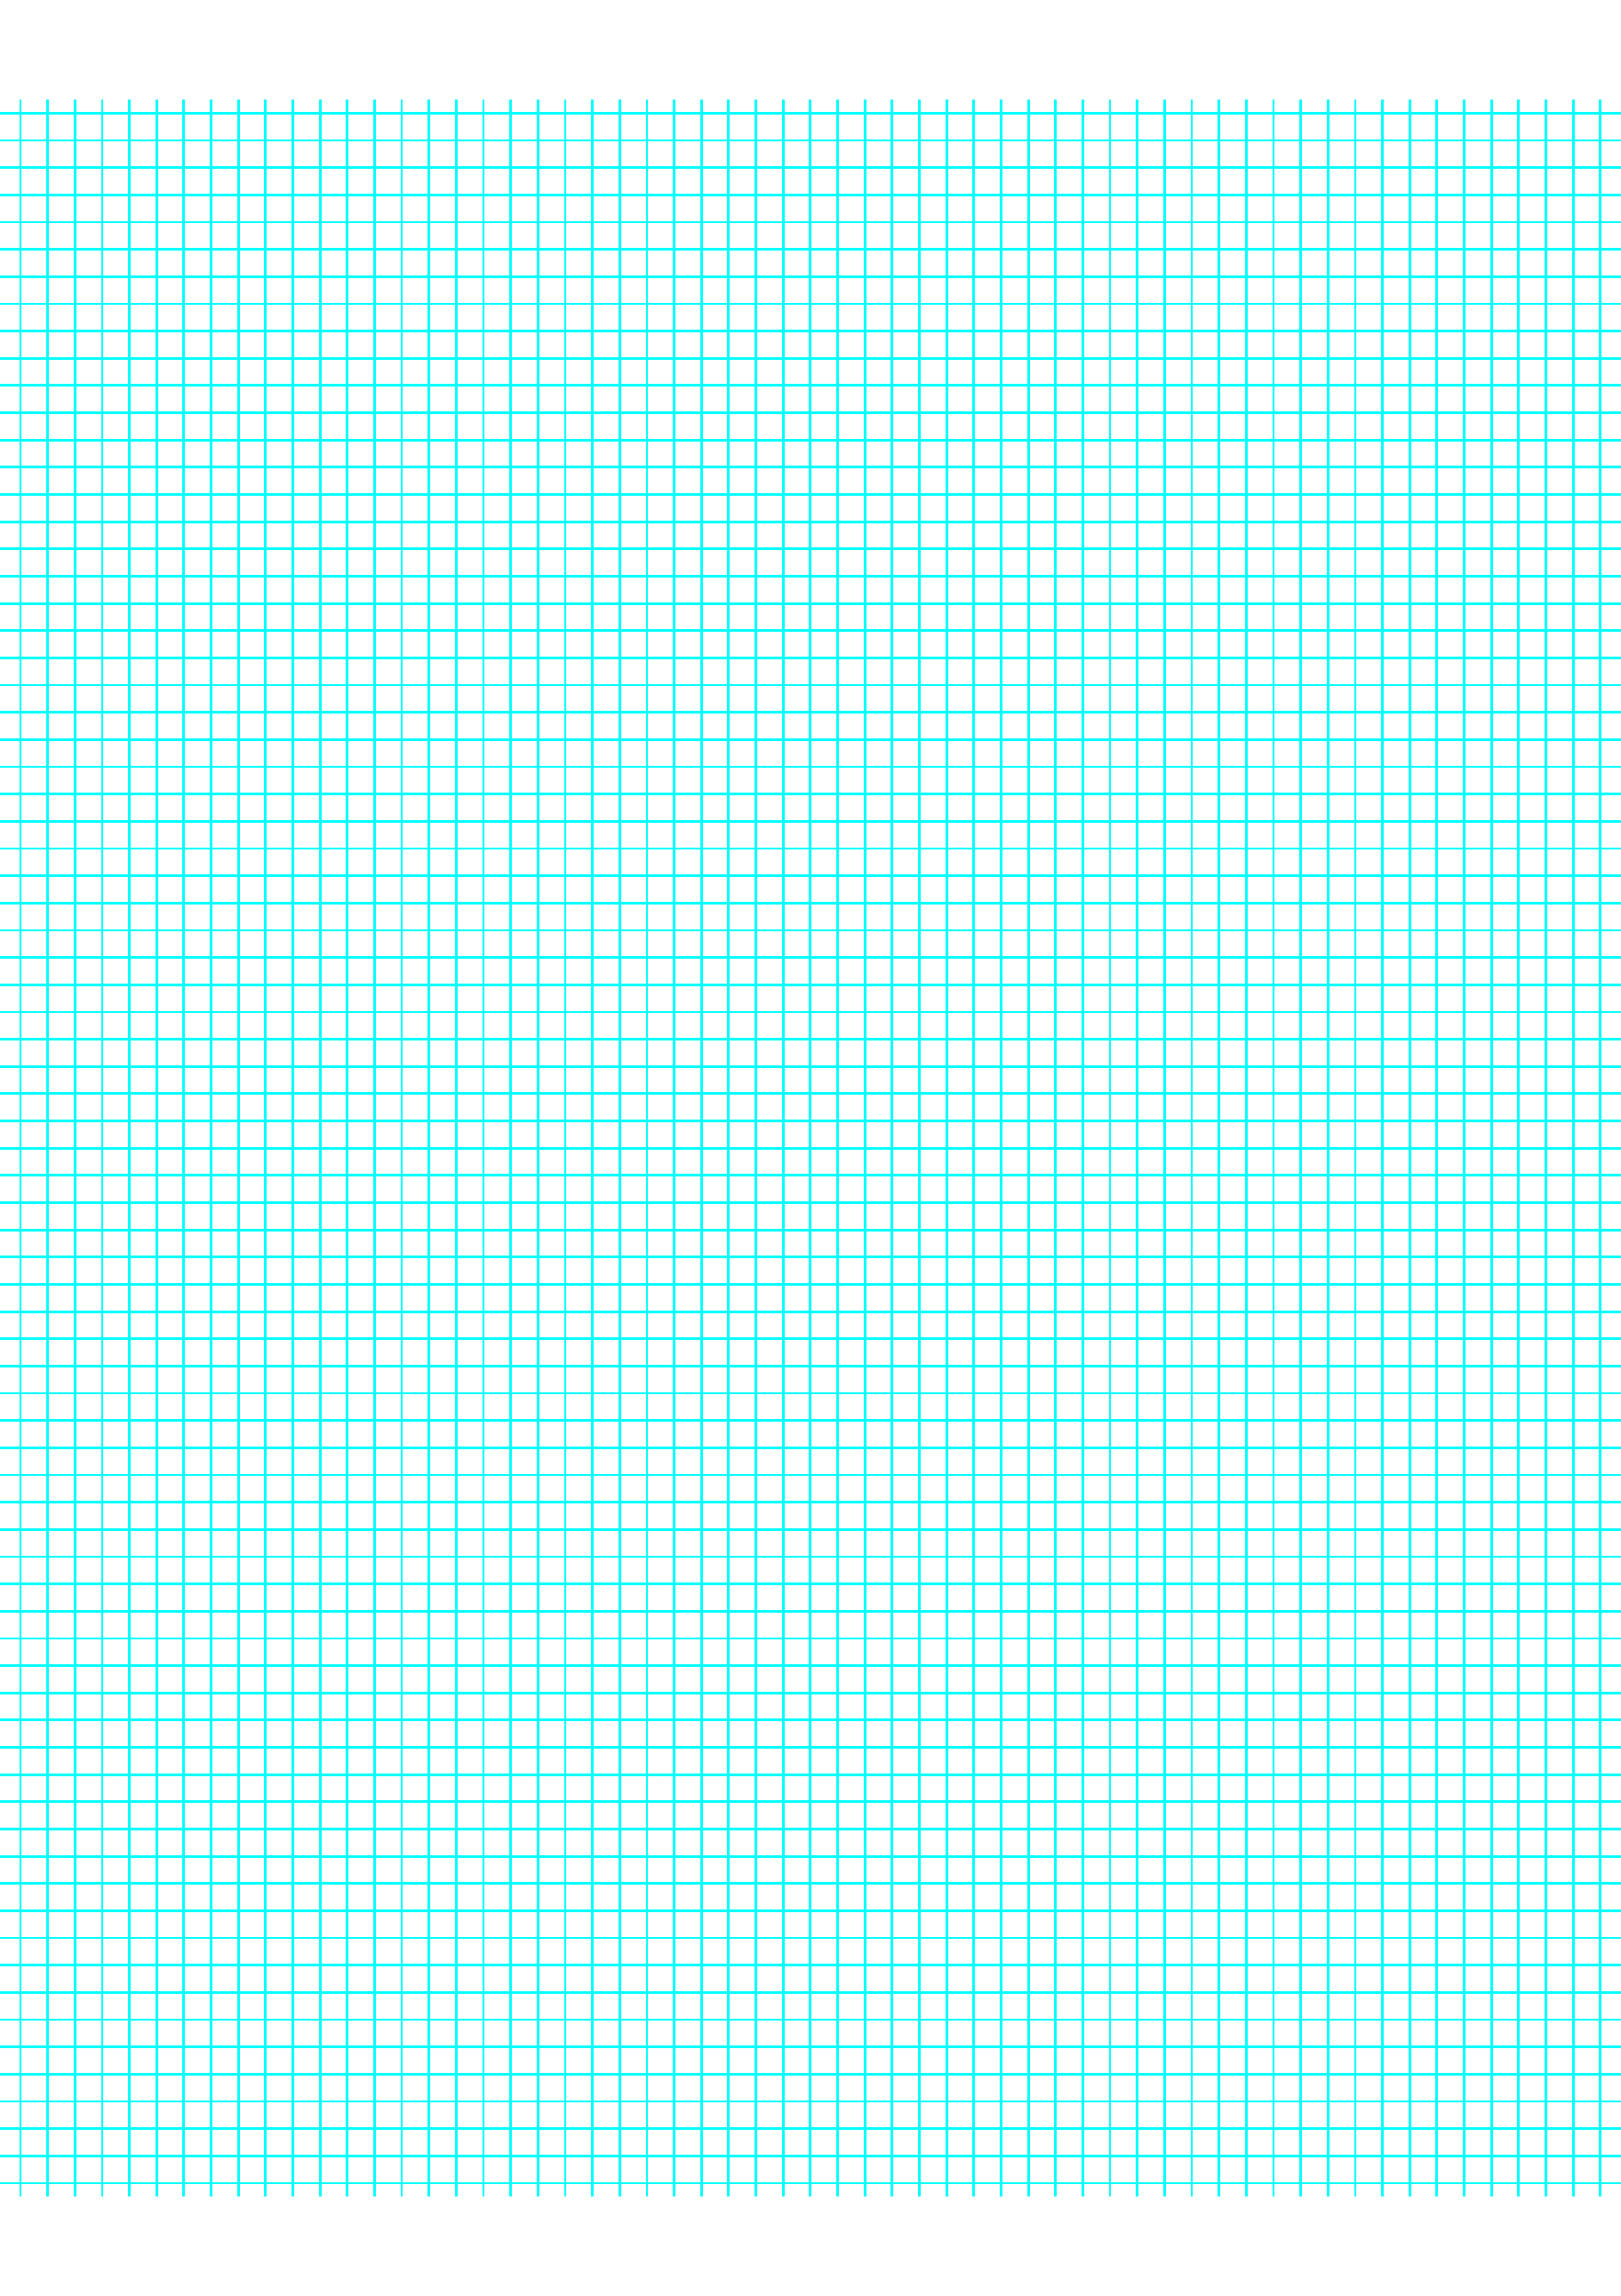 7 lines per inch graph paper on letter